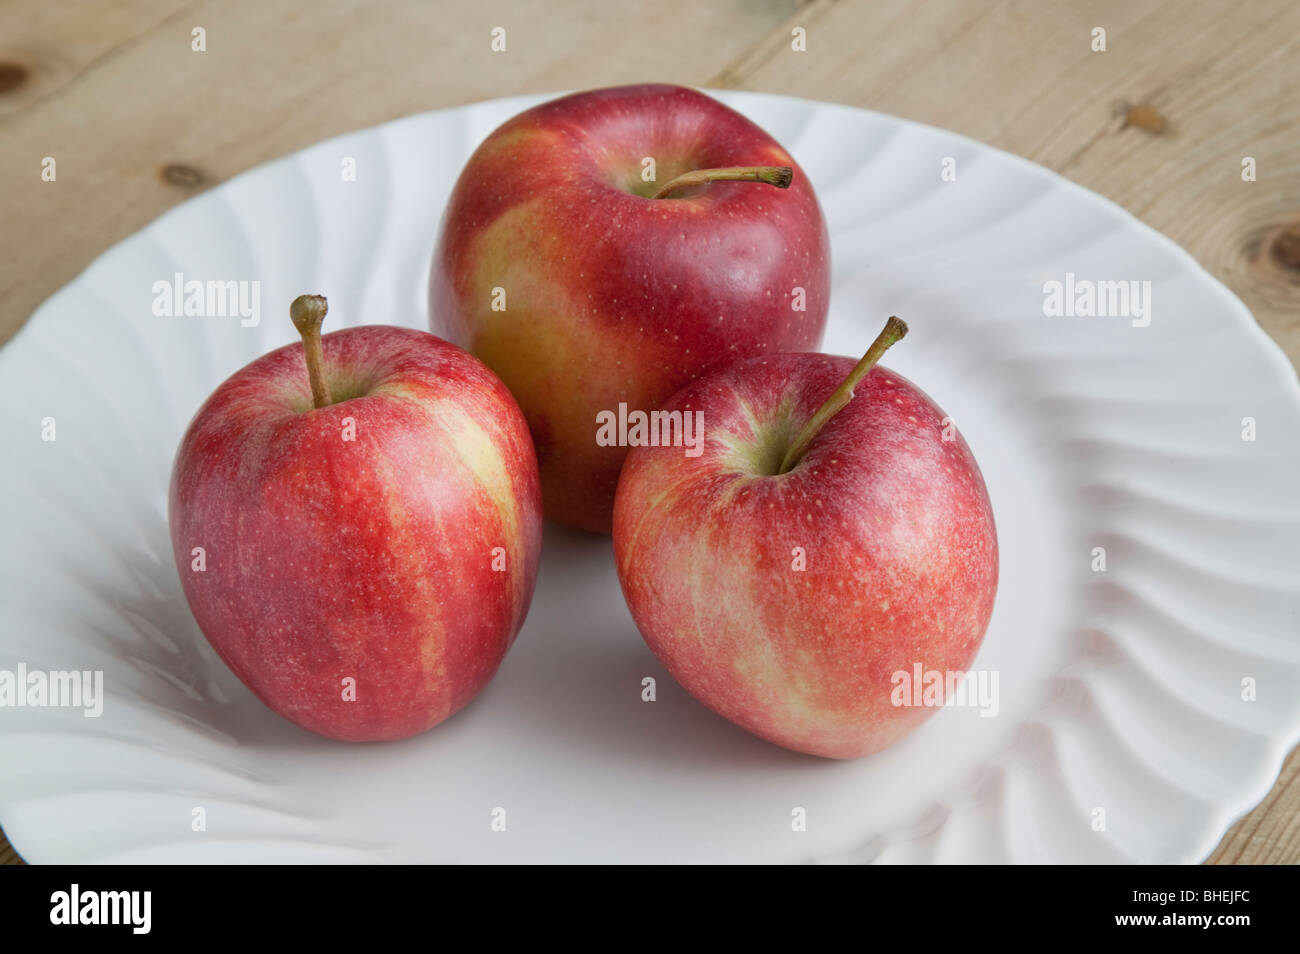 RED EATING APPLES ON WHITE PLATE ON WOODEN TABLE - Stock Image